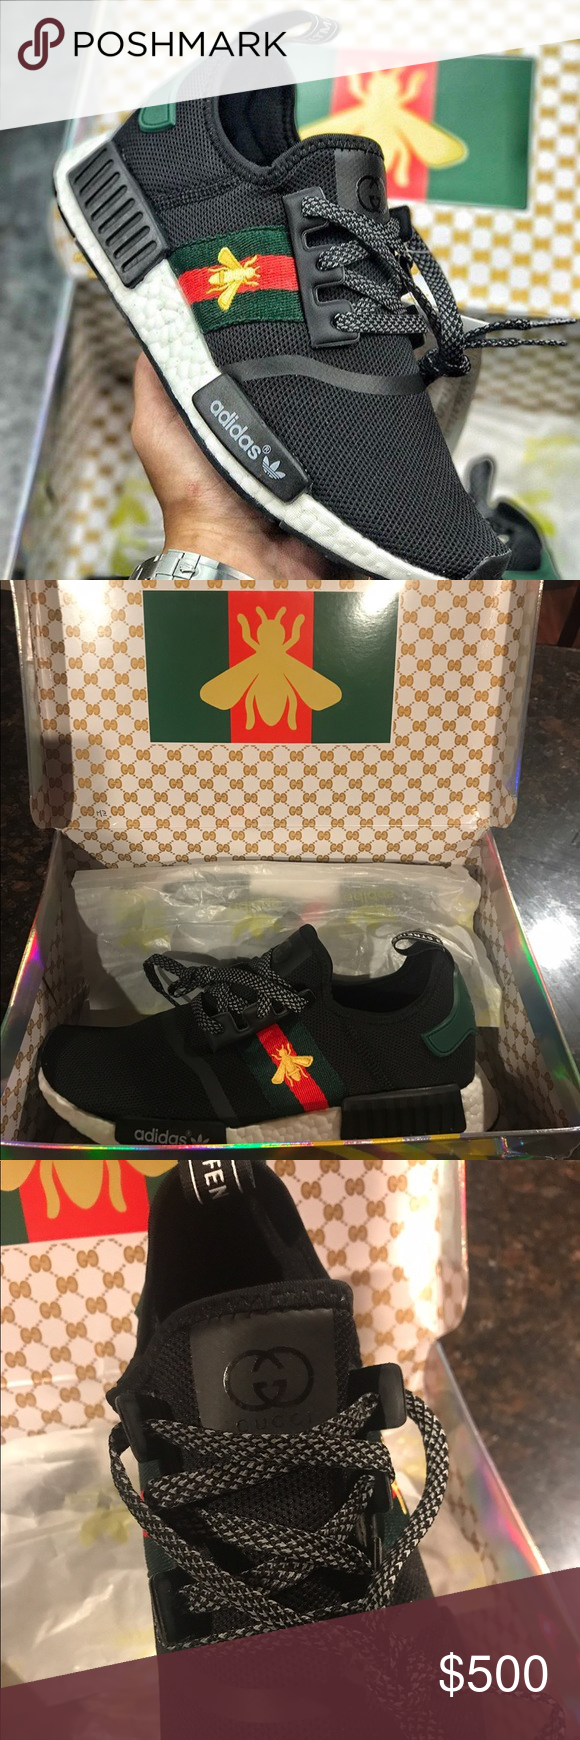 the best attitude 59785 44f3a Rare !! GUCCI X NMD ADIDAS COLLABORATION Brand-new with tags ...